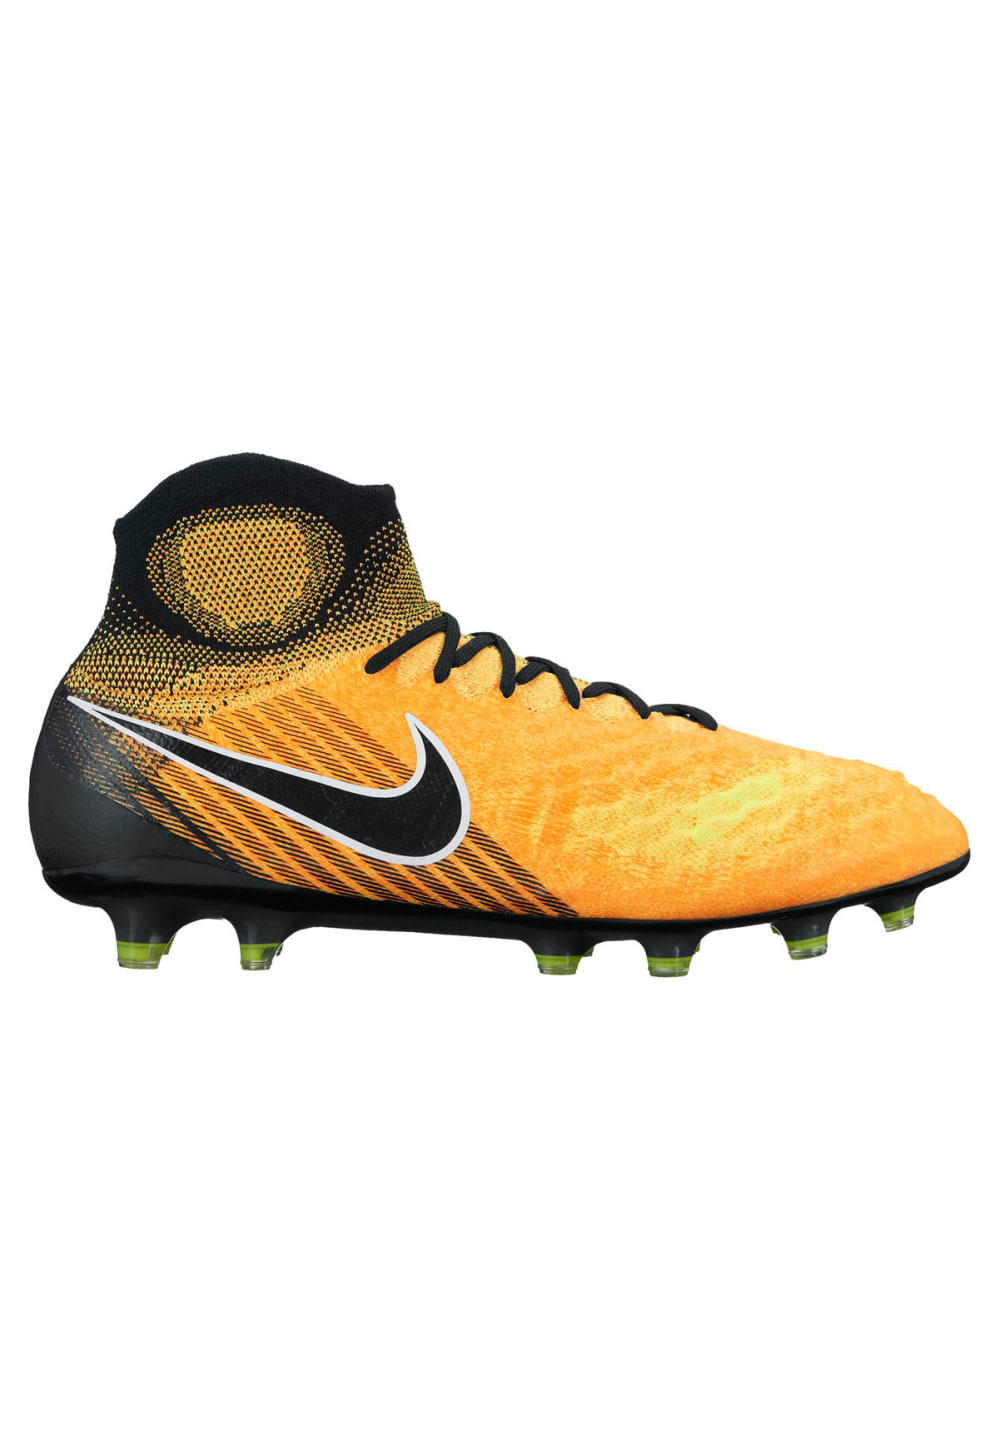 new concept 670d1 db5c7 Previous. Next. Nike. MagistaX Onda II IC - Football Shoes for Men